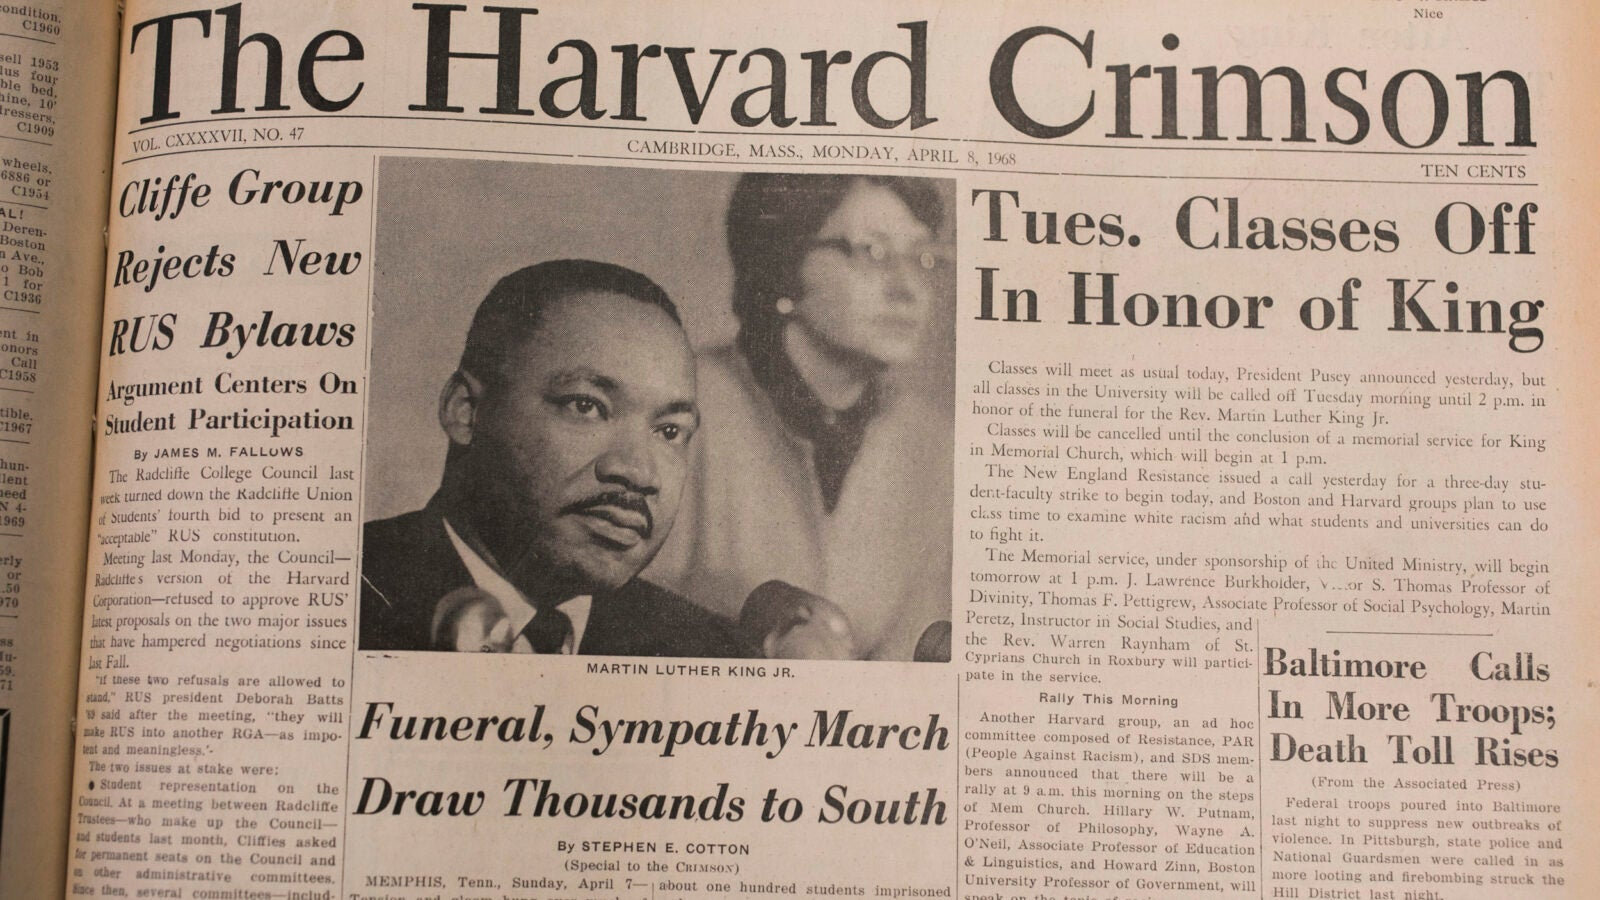 The Harvard Crimson's April 8, 1968, front page.